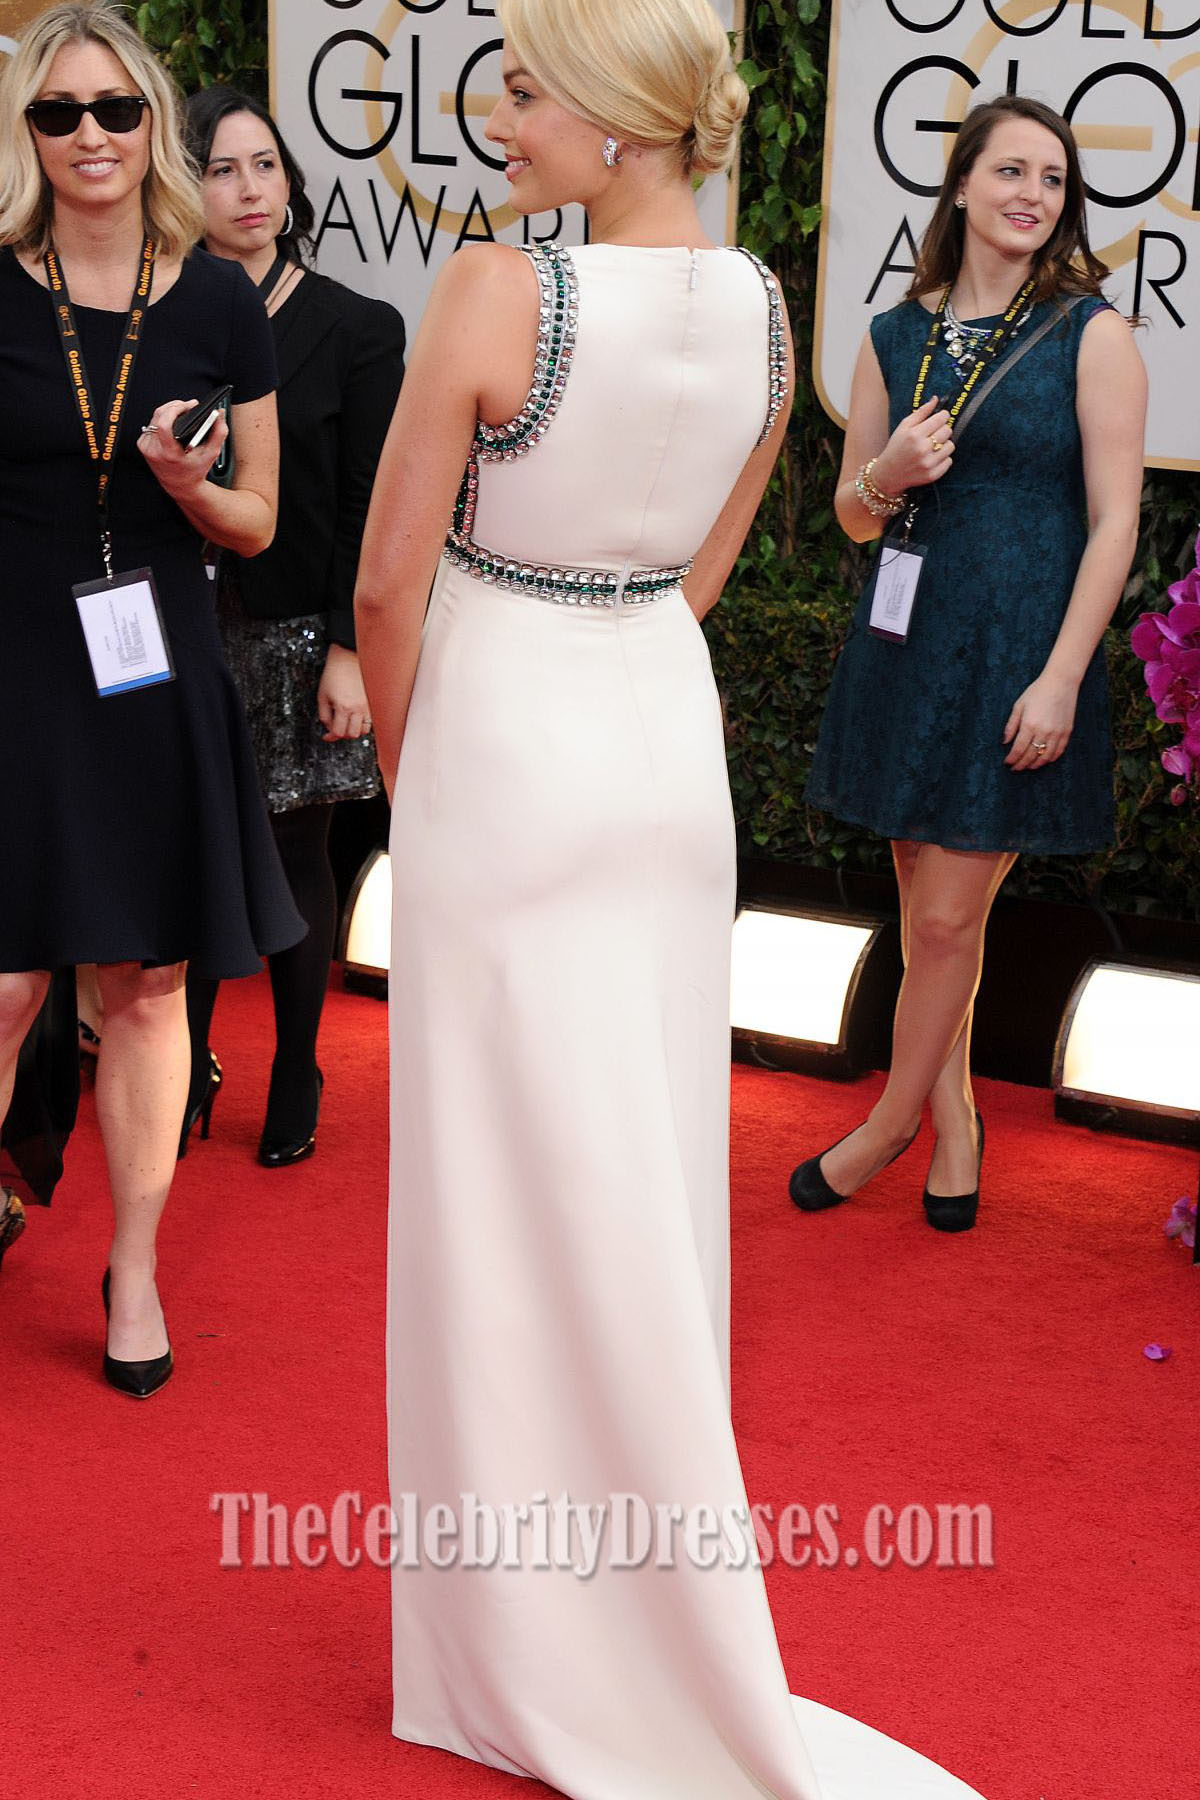 Golden Globes Roter Teppich Margot Robbie Wulstiges Formales Kleid 2014 Golden Globes